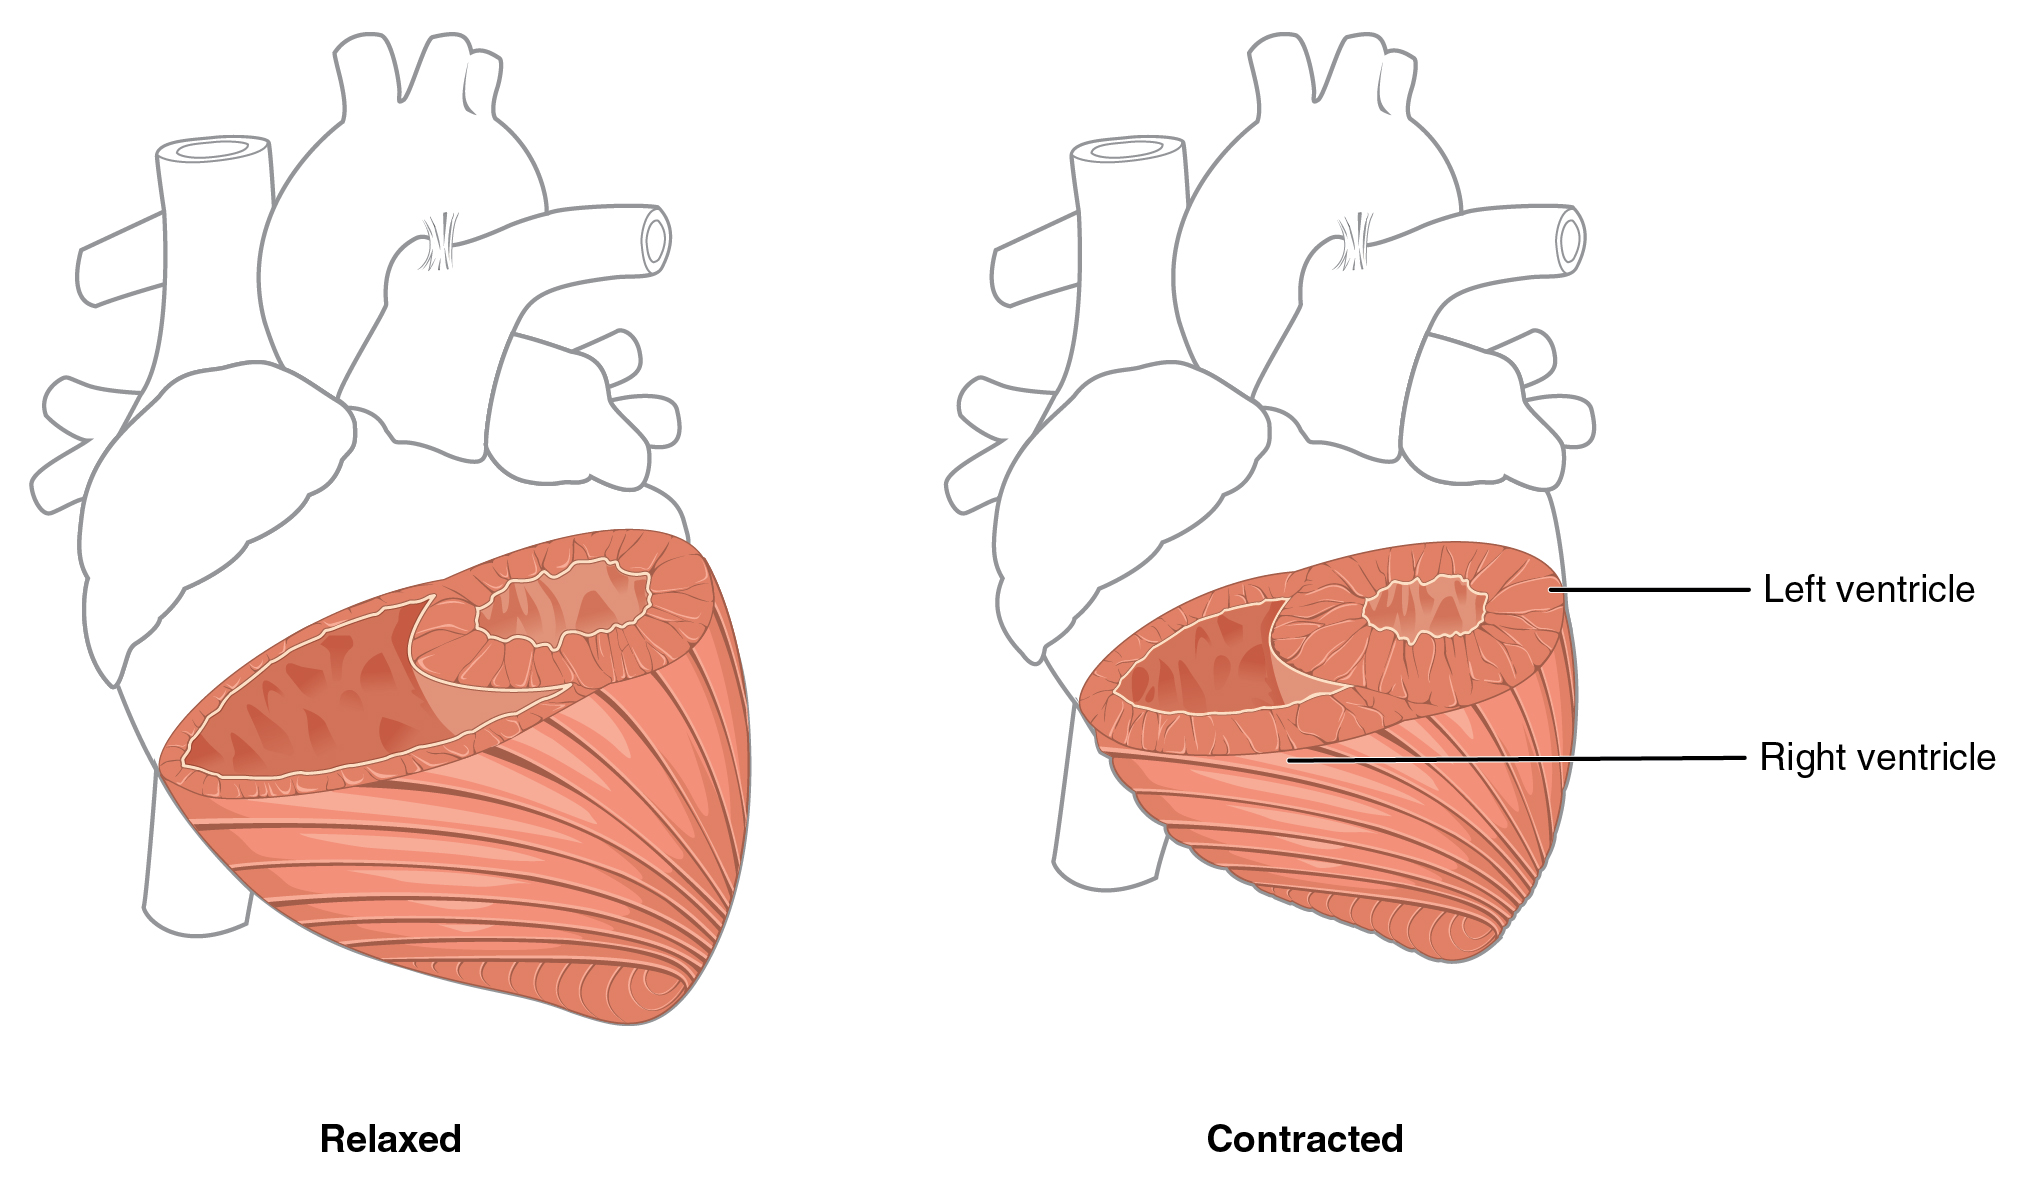 Labeled Diagram Of Heart Picture Is Part Anatomy Today We Give 191 And Physiology In This Figure The Left Panel Shows Muscles Relaxed Position